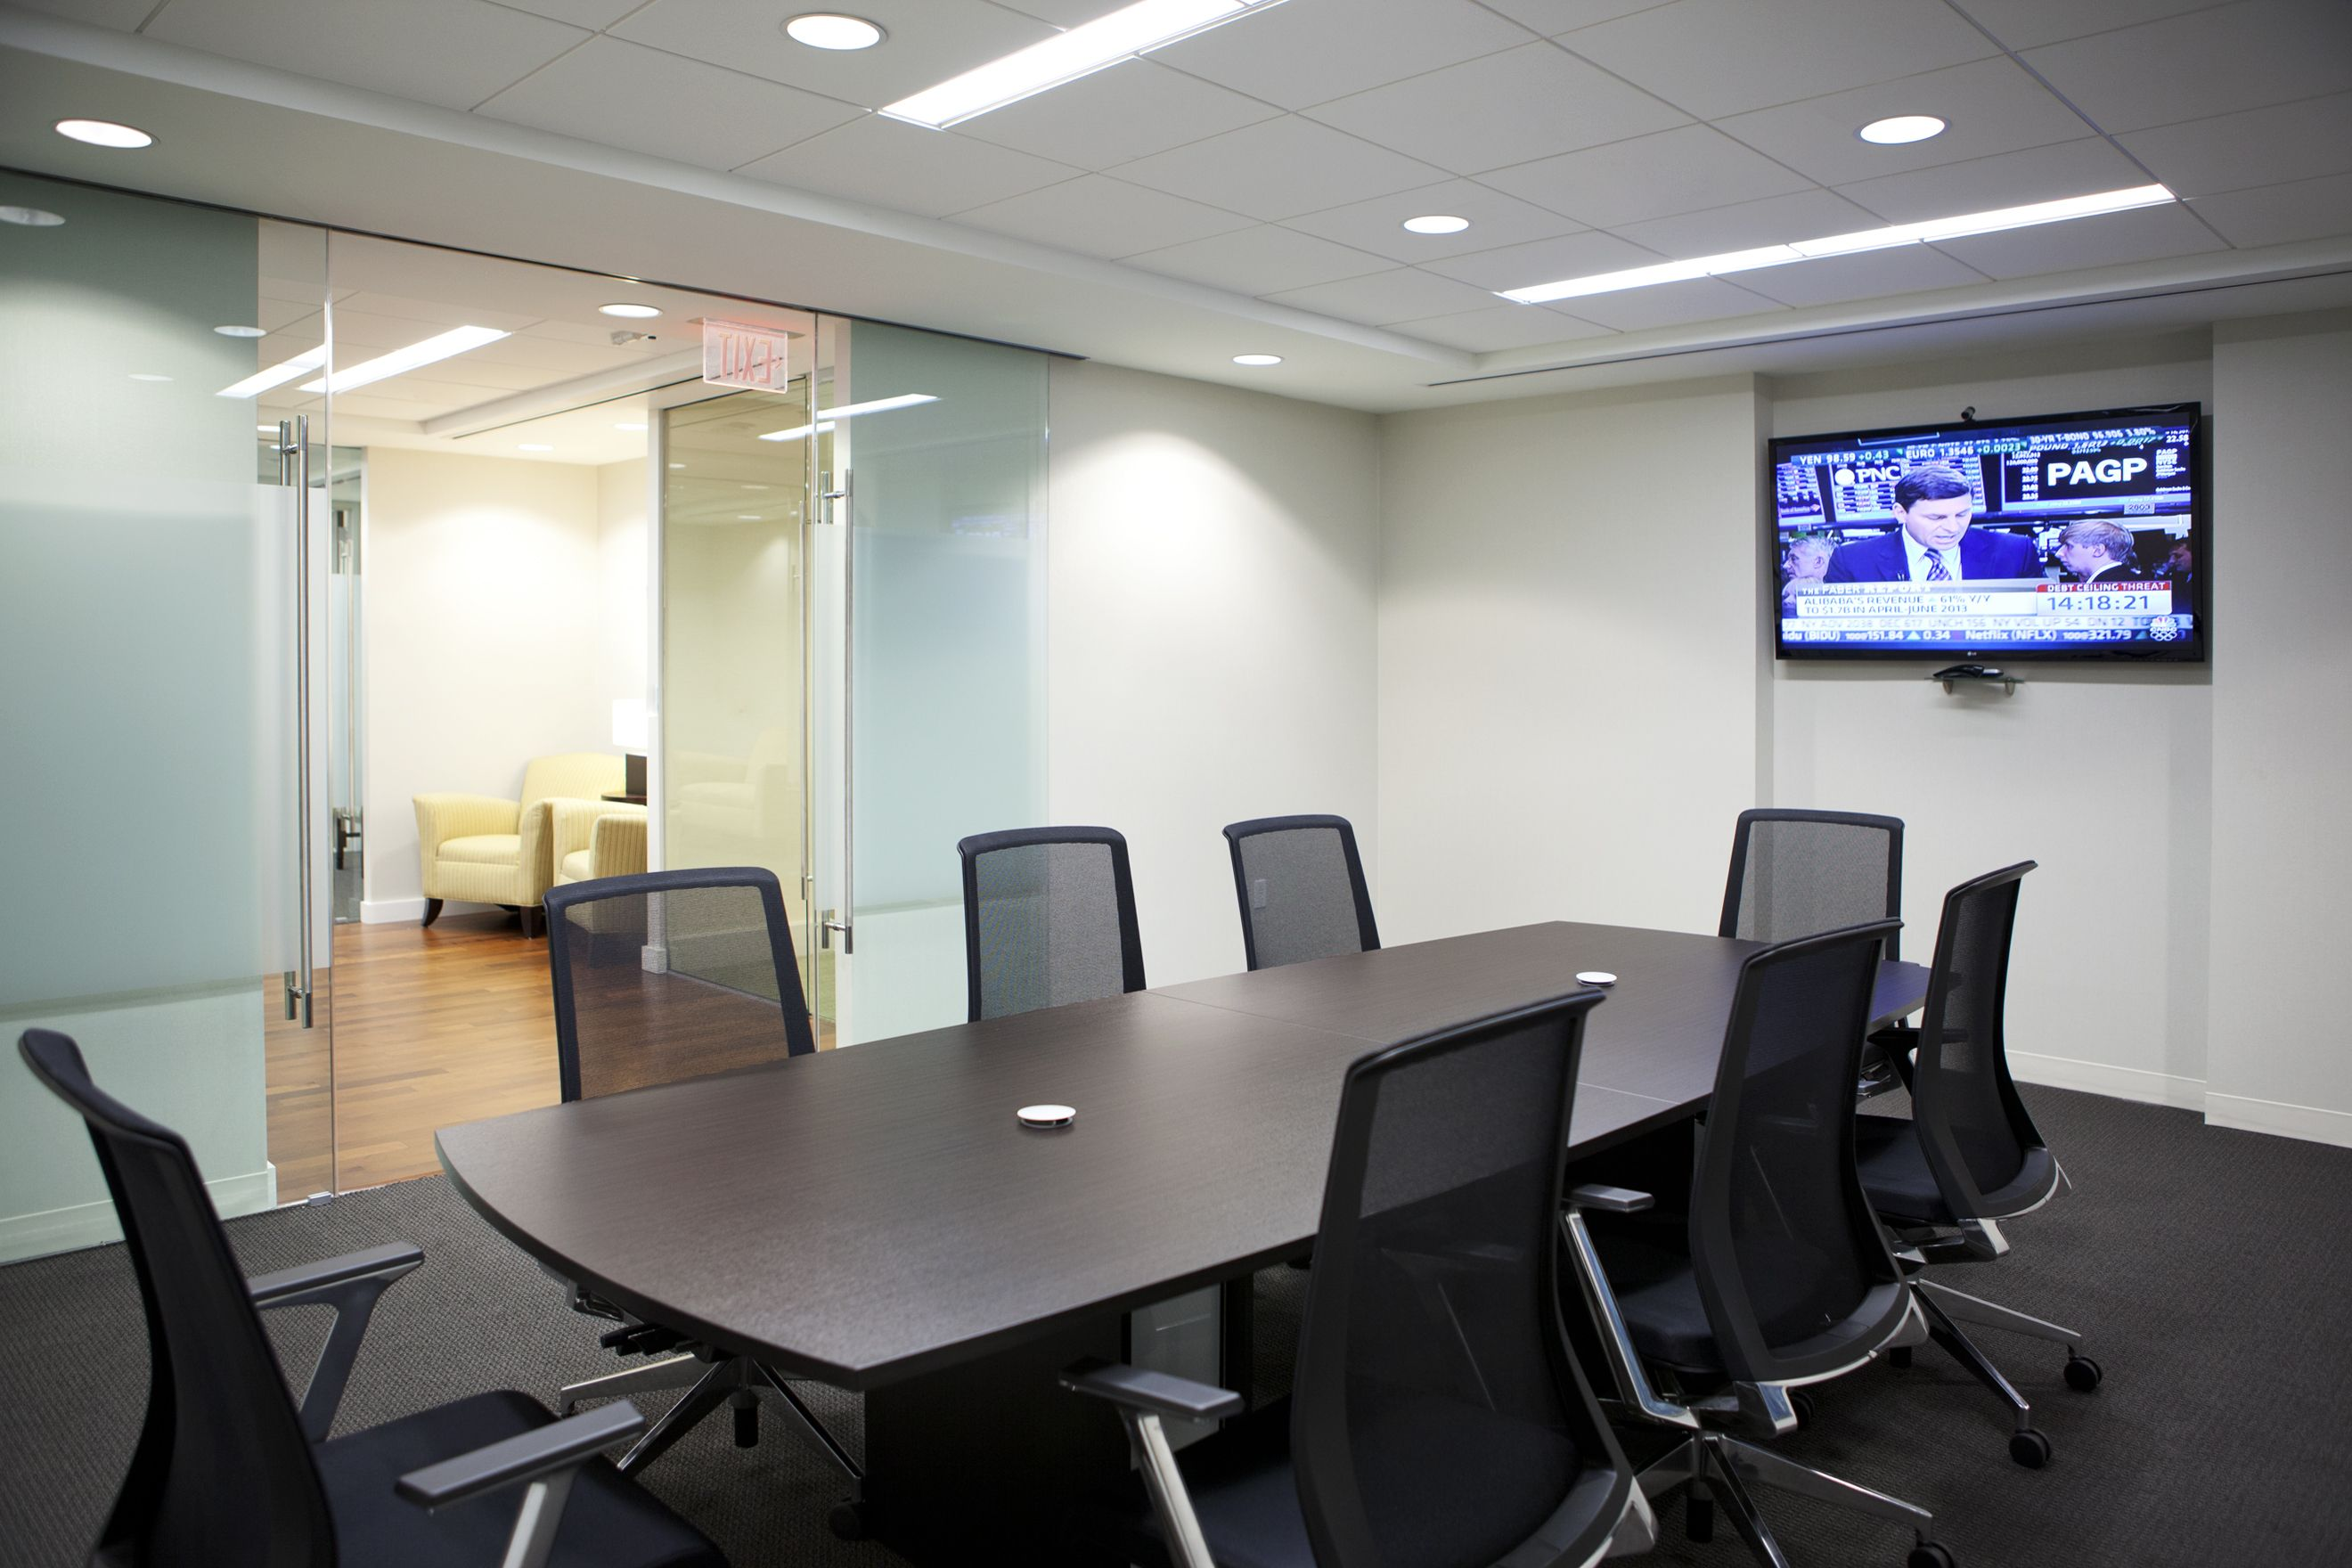 United capital bethesda md conference room dorma 150 agile sliding united capital bethesda md conference room dorma 150 agile sliding glass door system planetlyrics Image collections